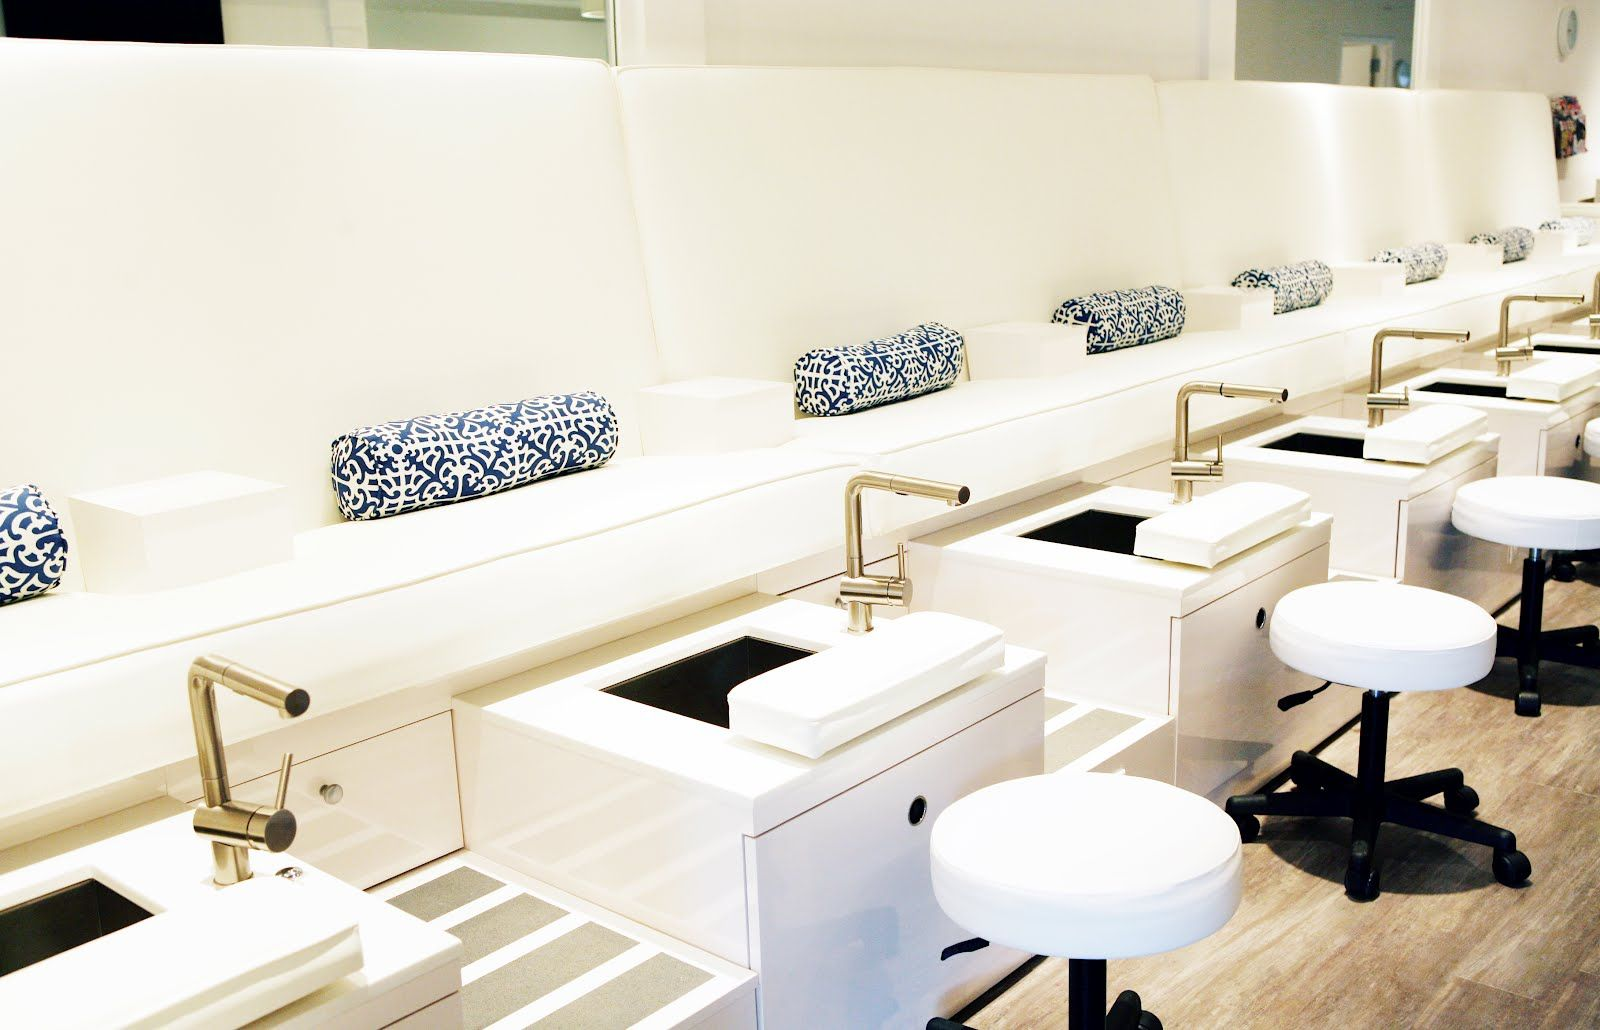 Groovy Usa Gallery Of Salon Spa Design Nail Shop Nail Salon Home Interior And Landscaping Ologienasavecom